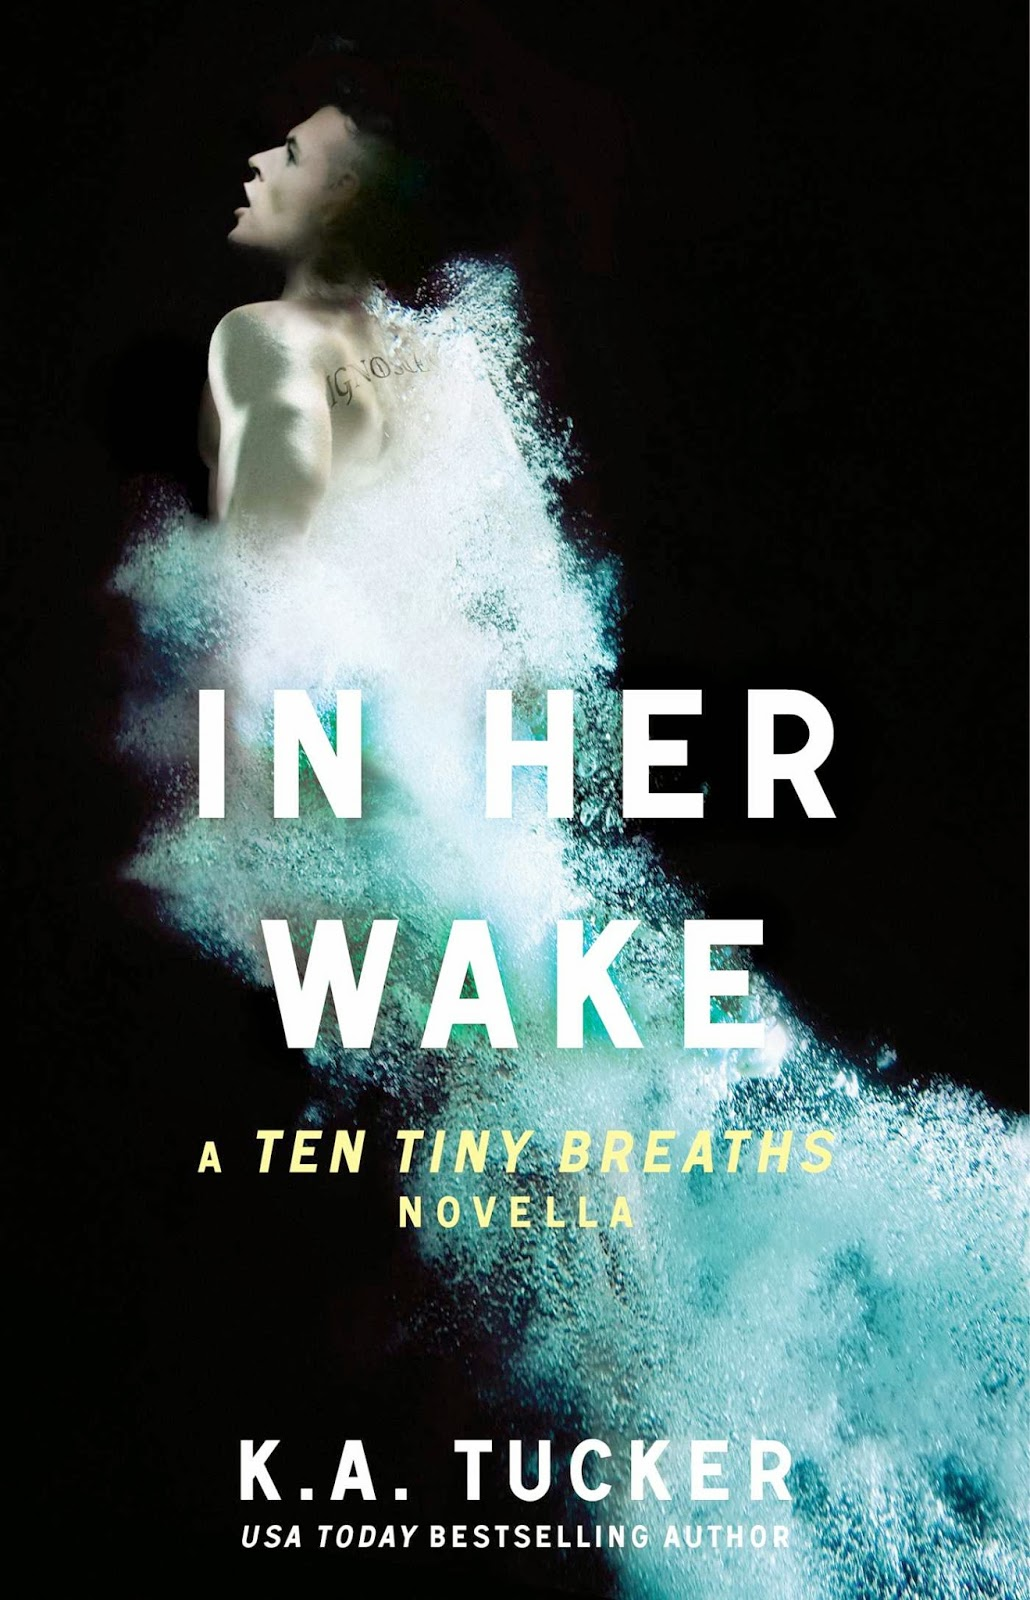 https://www.goodreads.com/book/show/21487587-in-her-wake